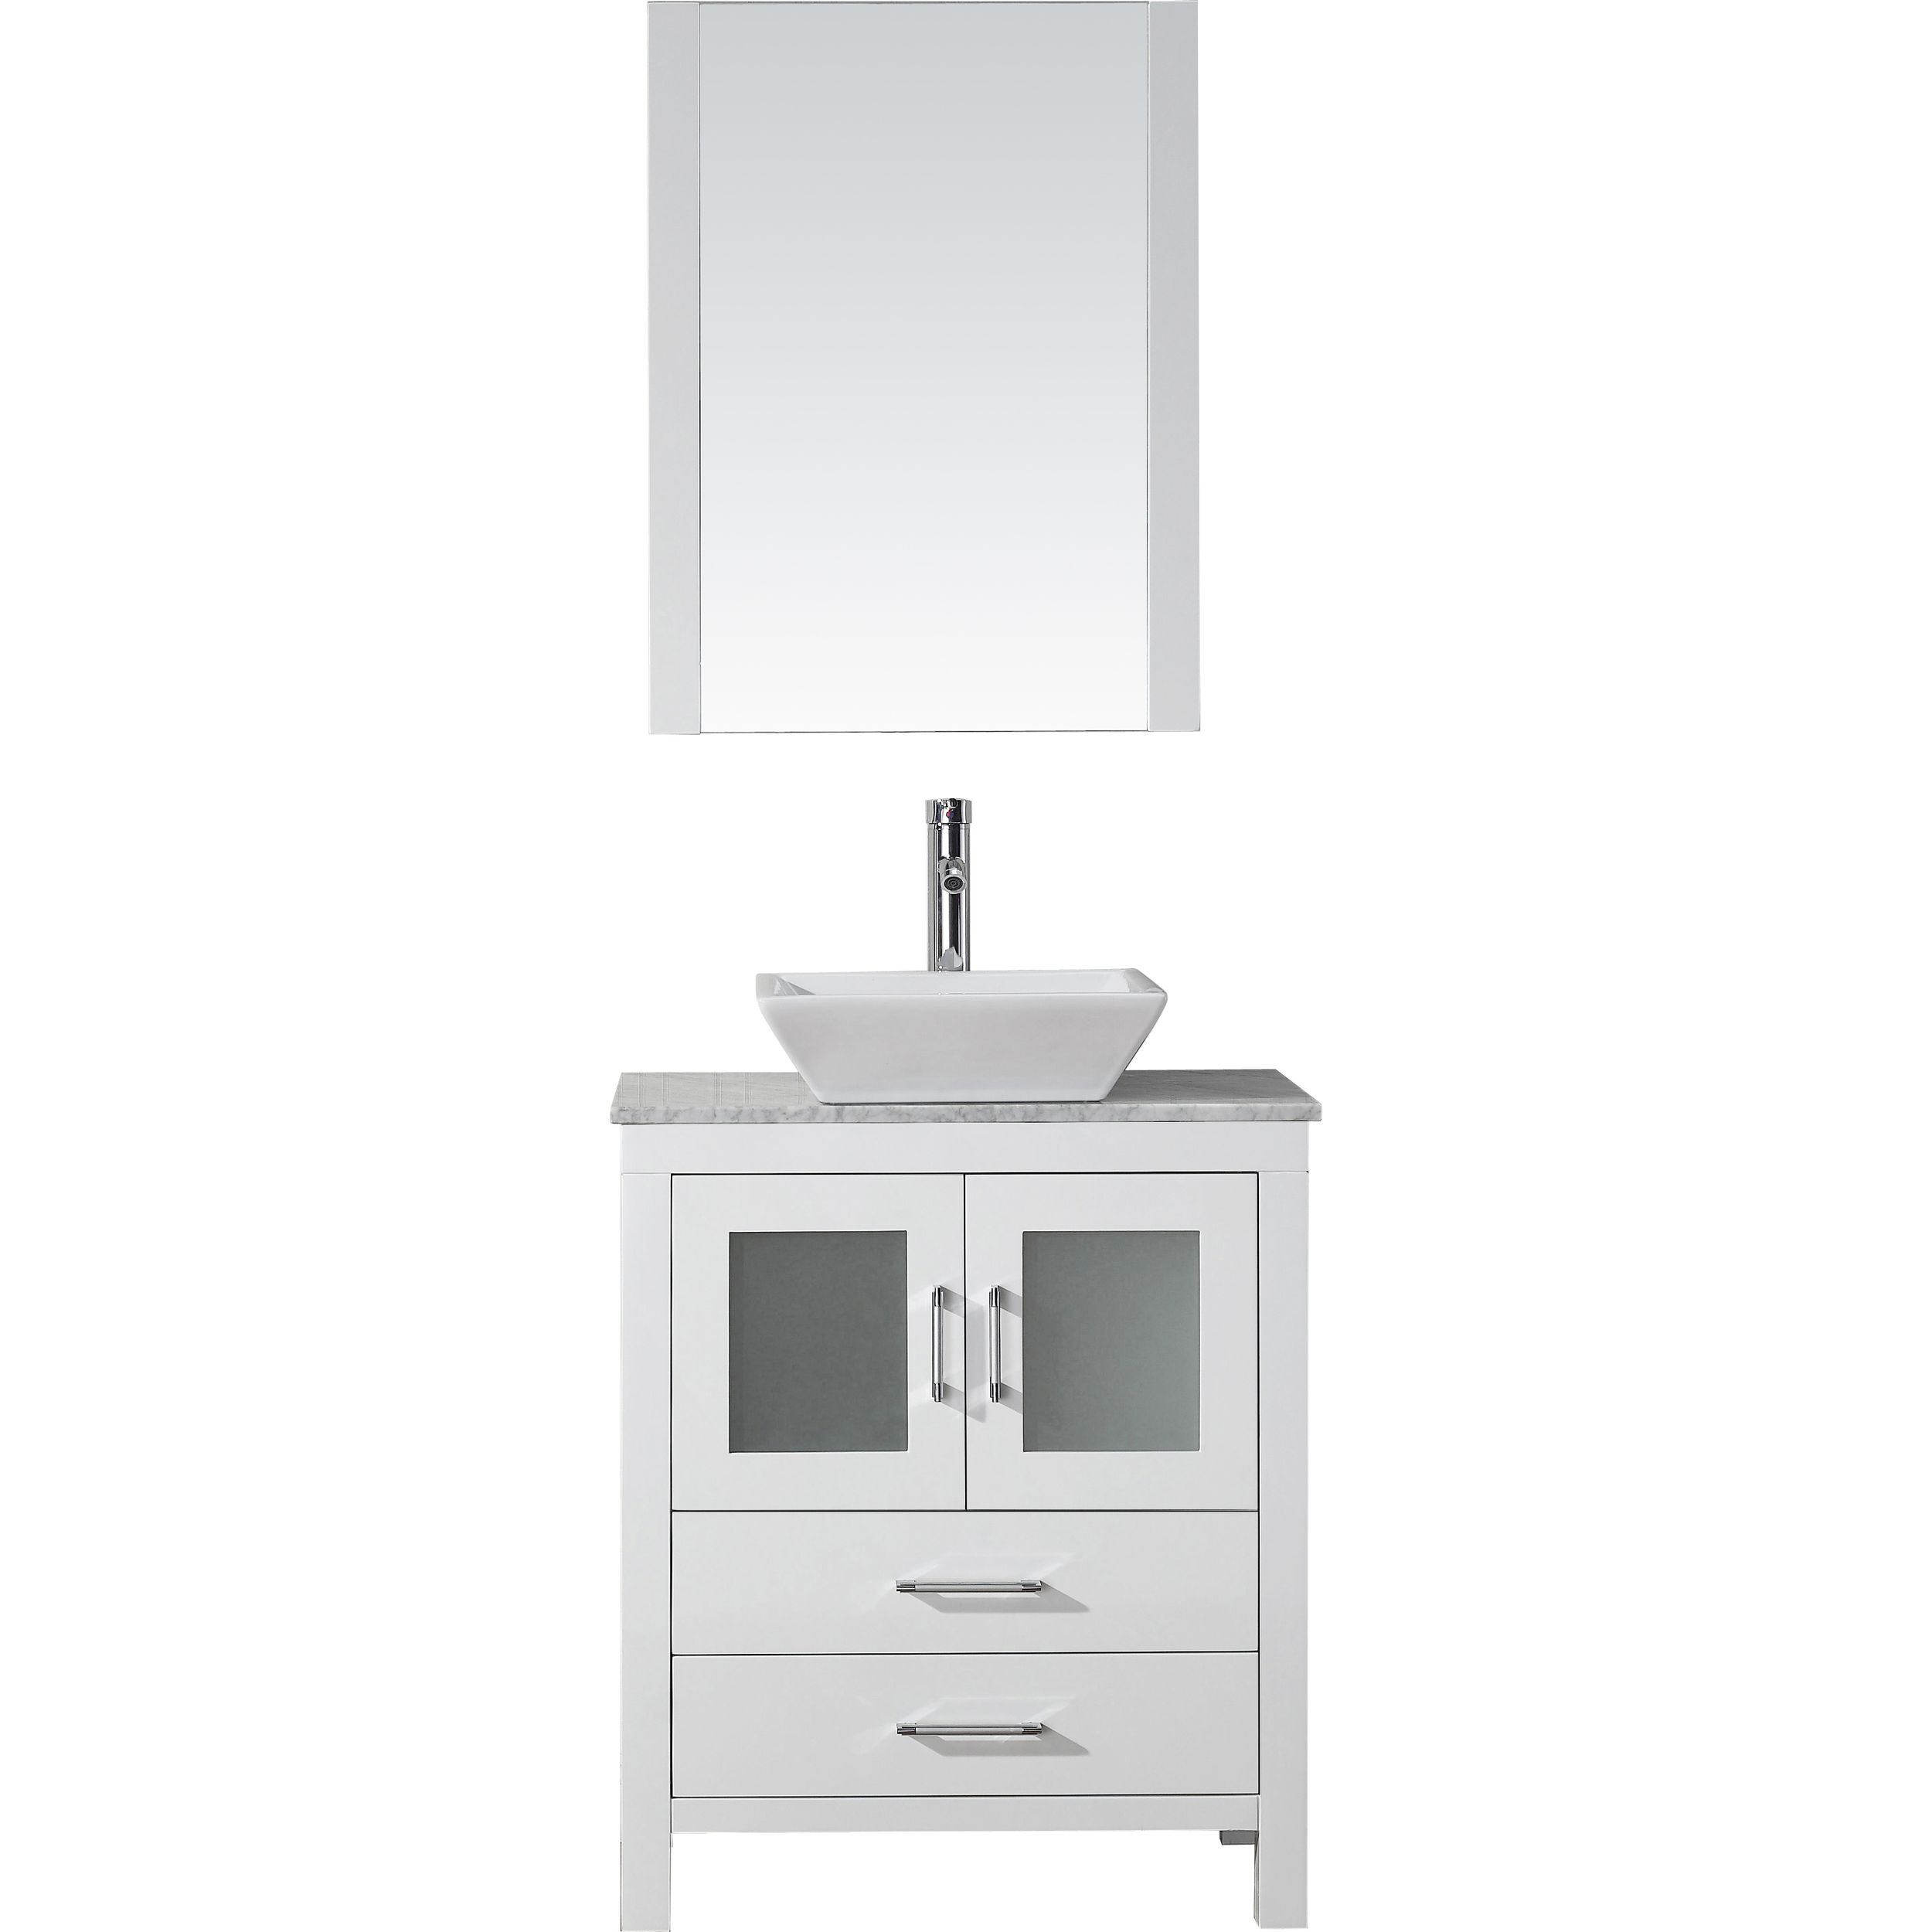 plans single bathroom white cabi sink float vanities glass with wooden small amazing vanity inch interior design new furniture of hd